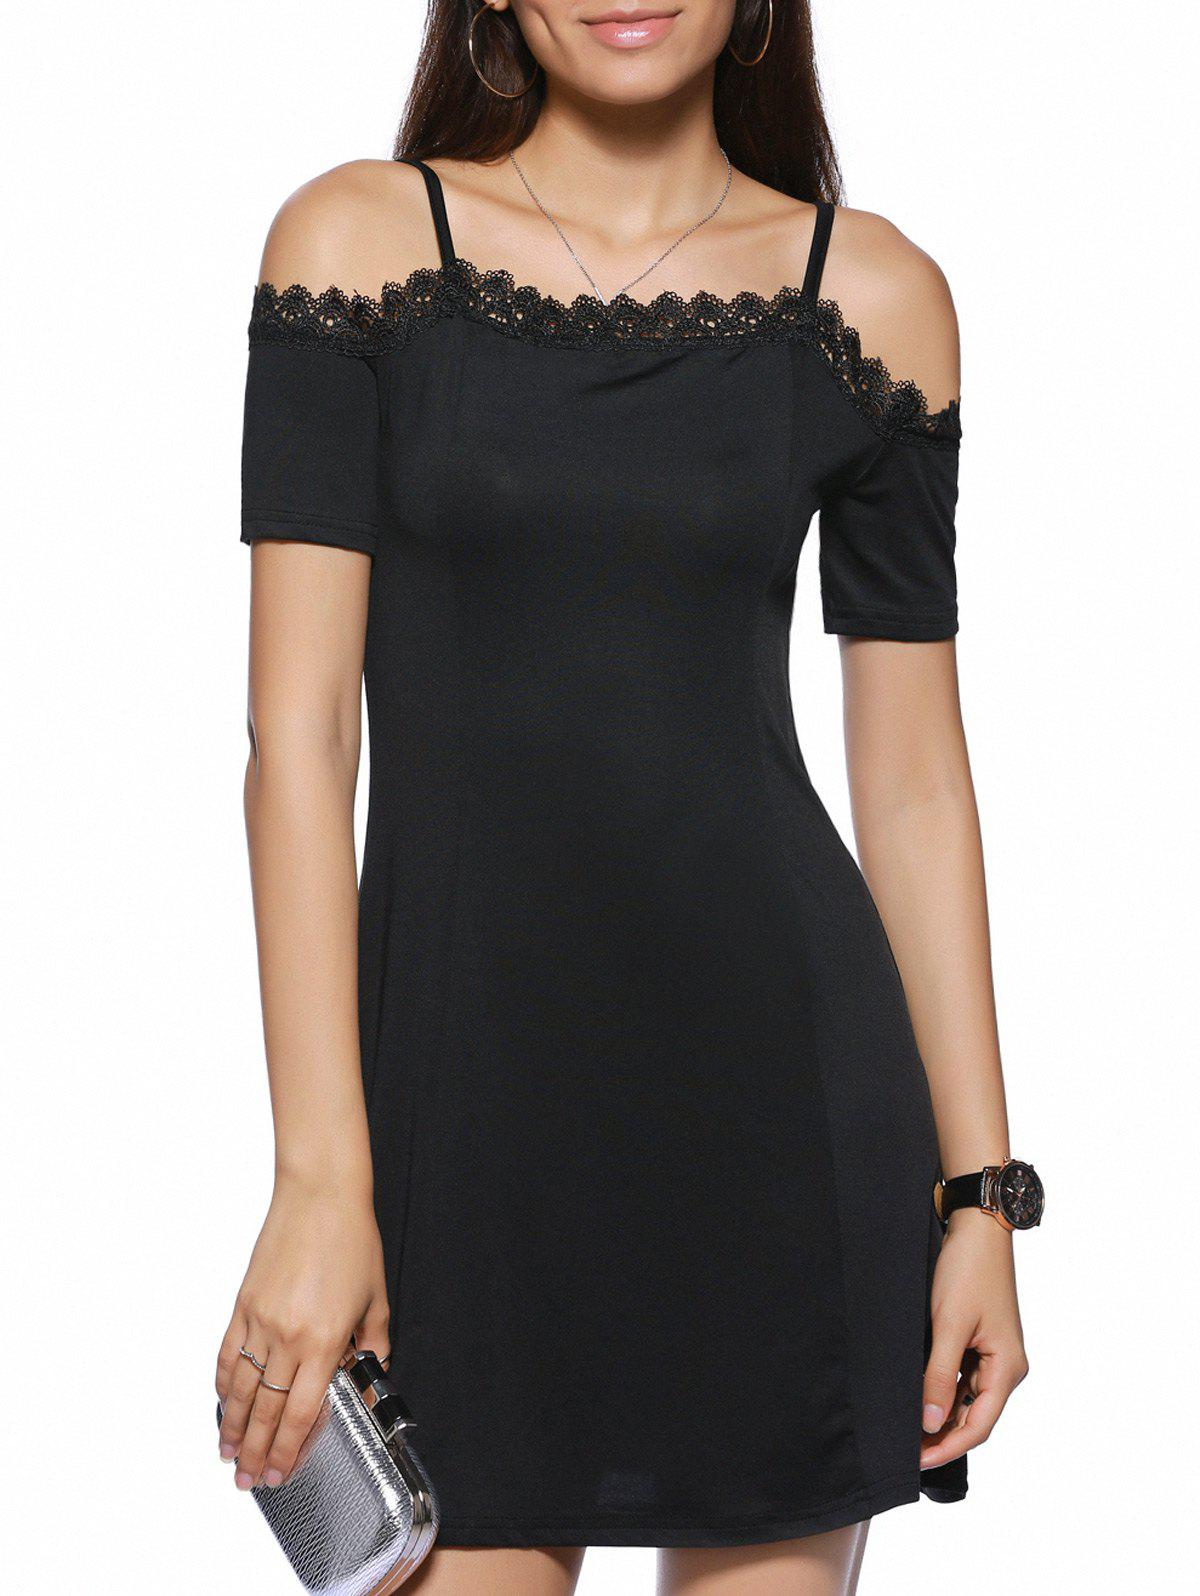 Spaghetti Strap Black Lace Spliced Sheath Dress